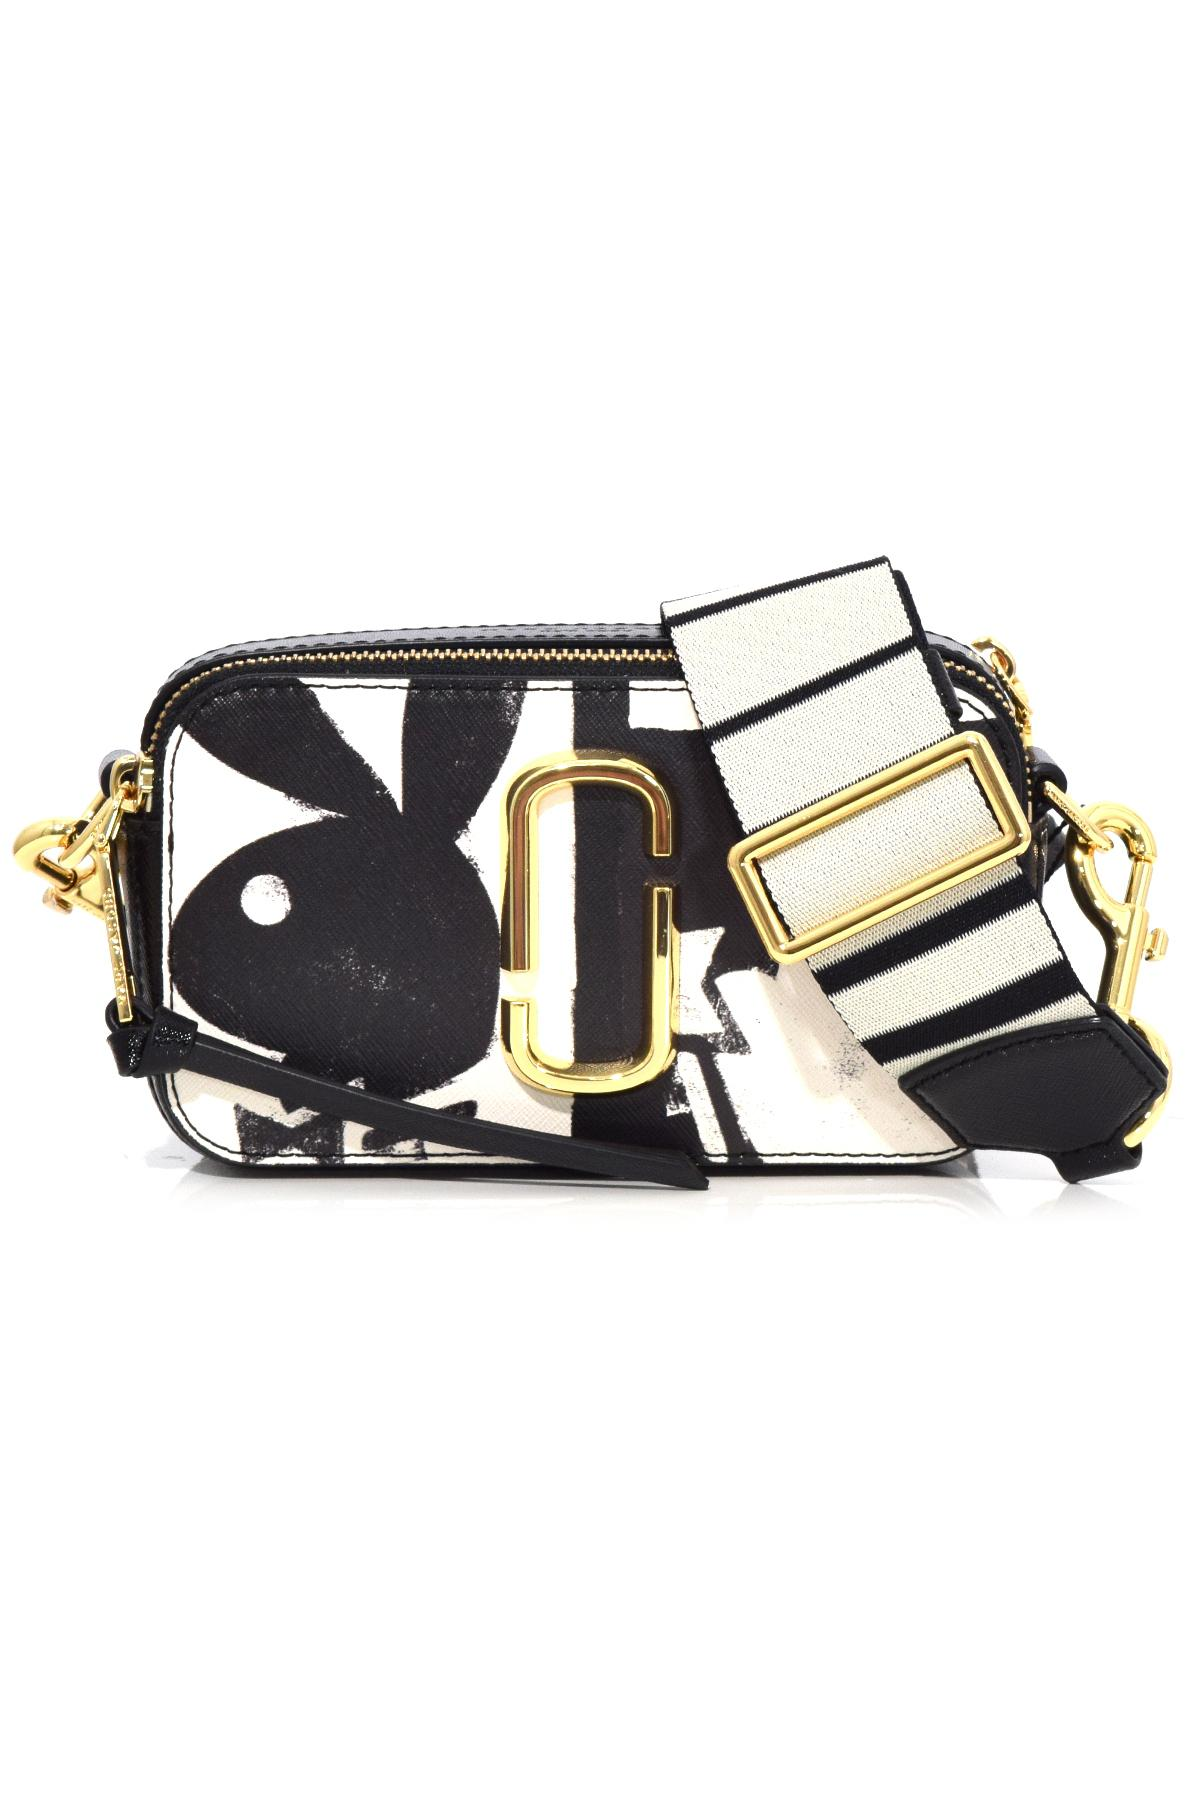 cbdfbbbc6ce Marc Jacobs Snapshot Small Playboy Bag In Black Multi in Black - Lyst